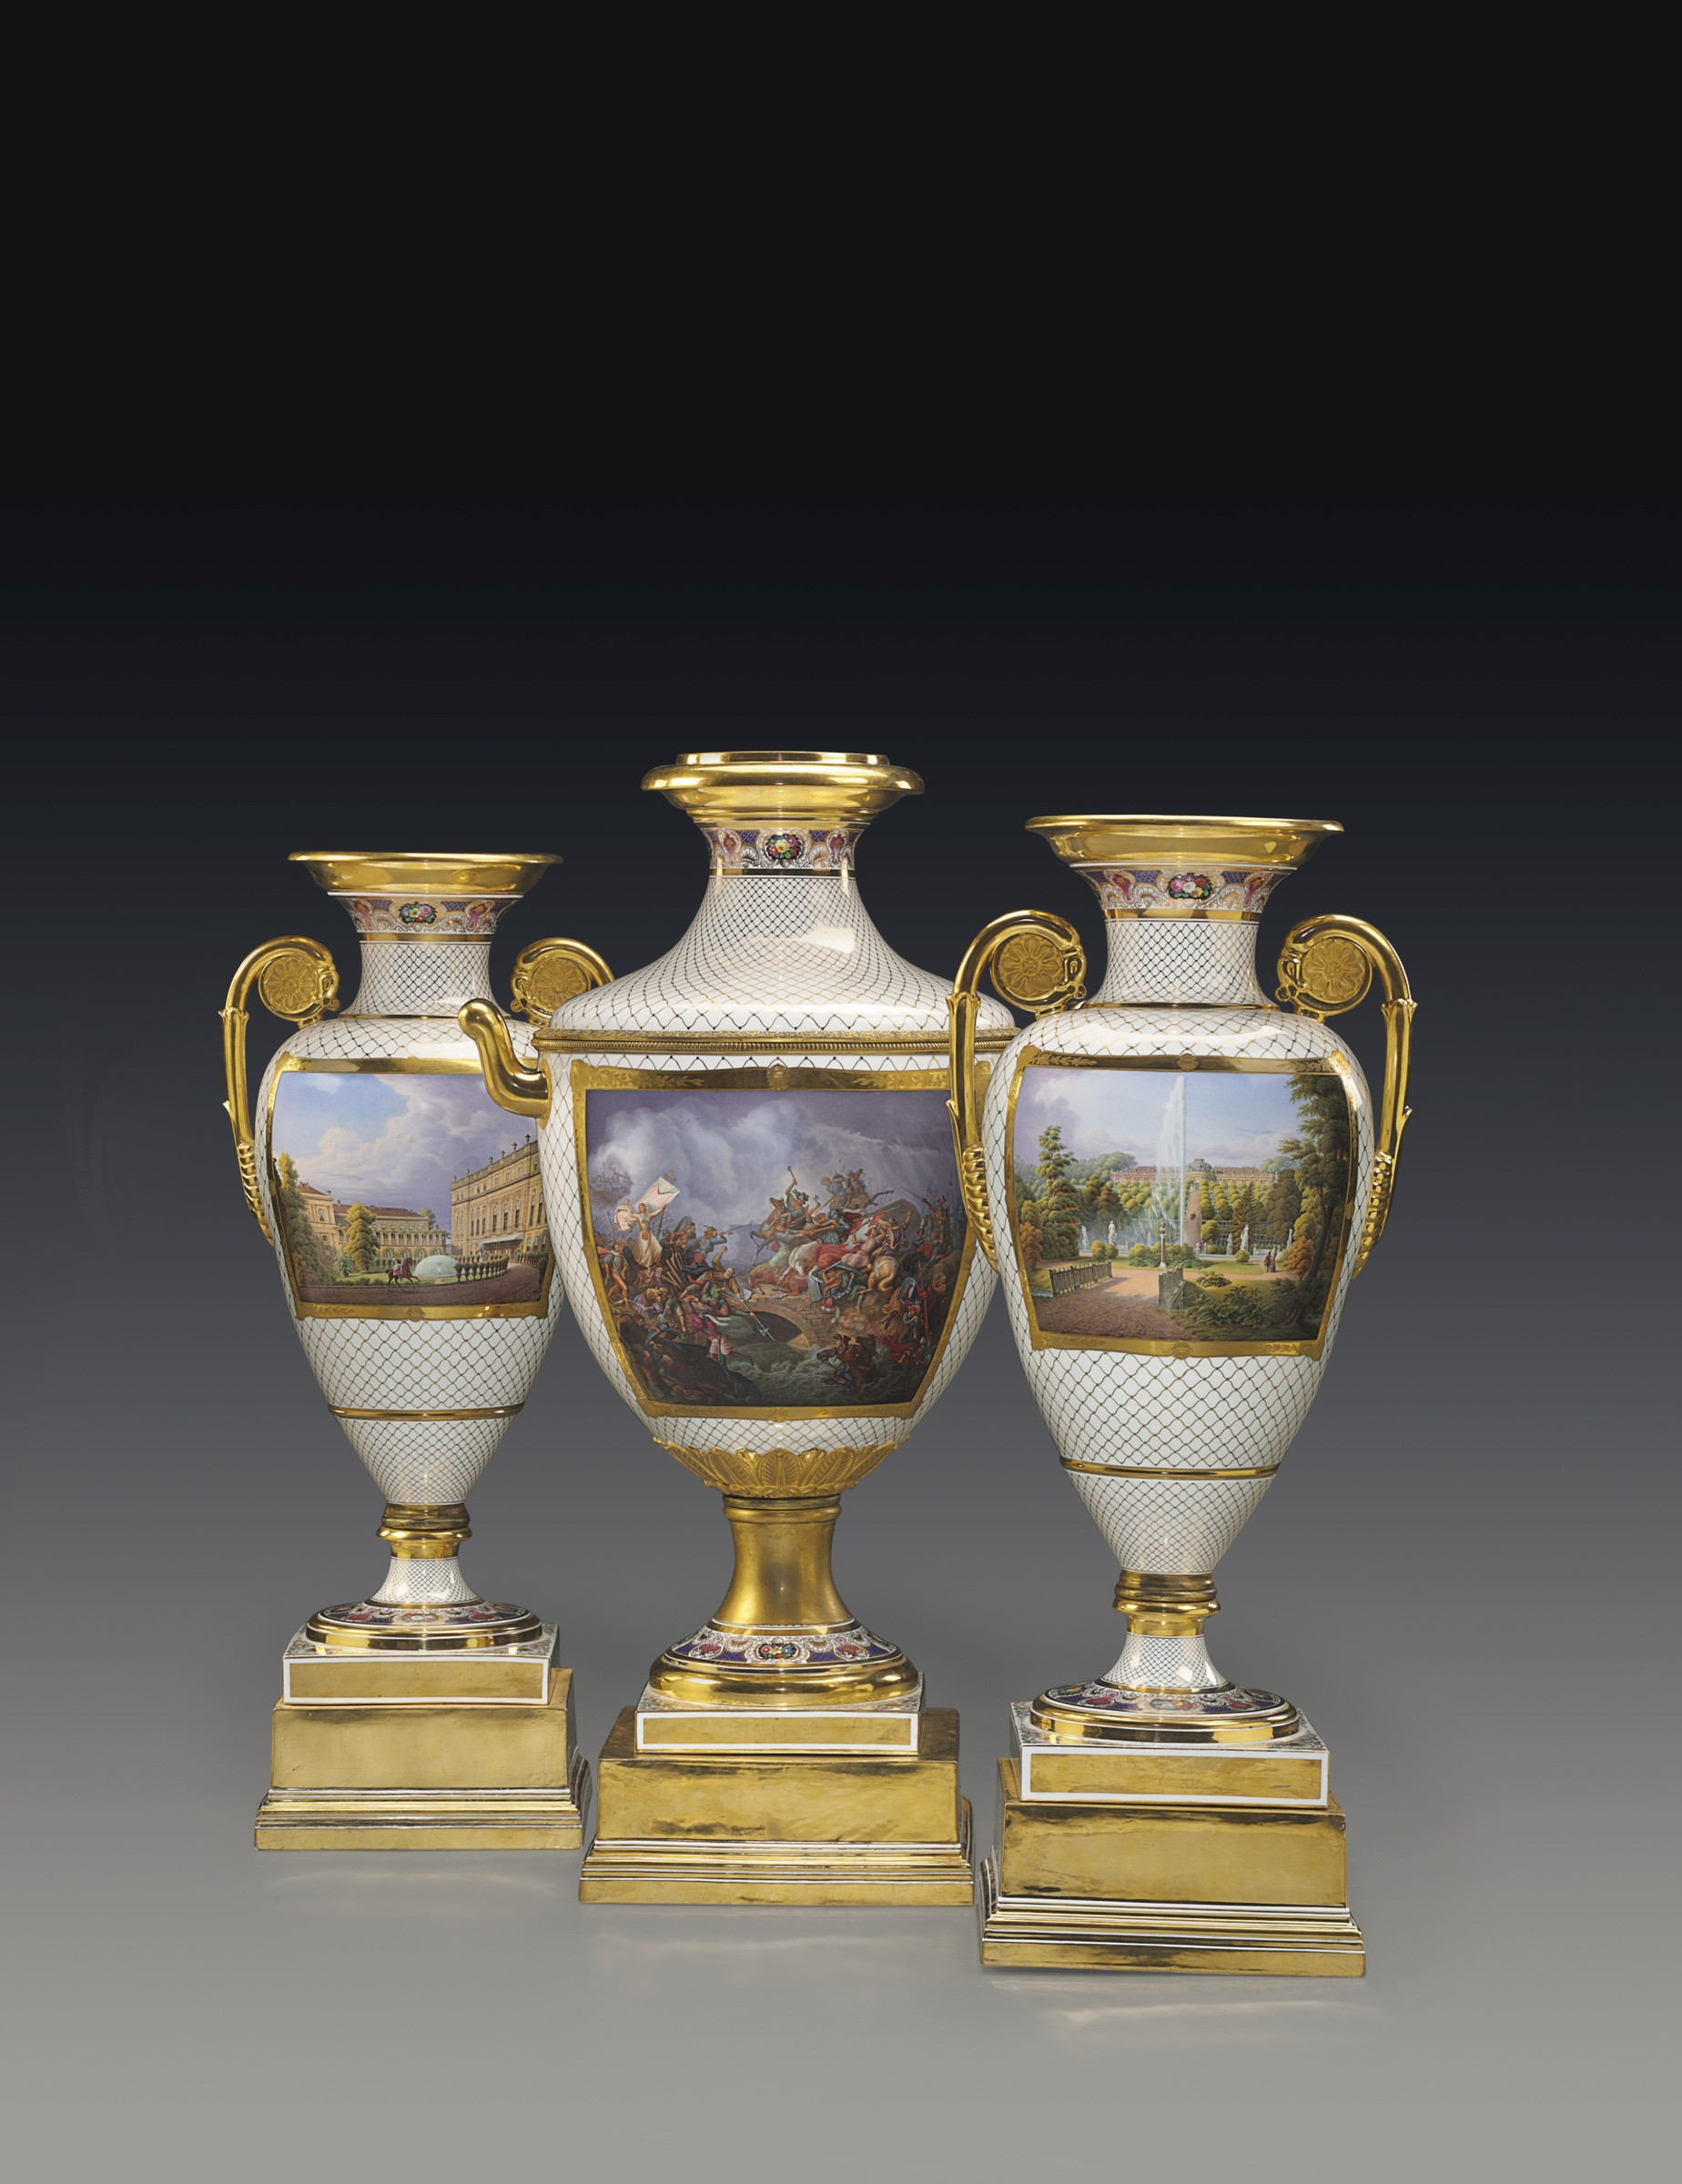 Metal Vase with Handles Of K P M Ka¶nigliche Porzellan Manufaktur Berlin A Highly Important Intended for A Highly Important Classical Armorial and topographical Three Piece Vase Garniture From the Meiningen